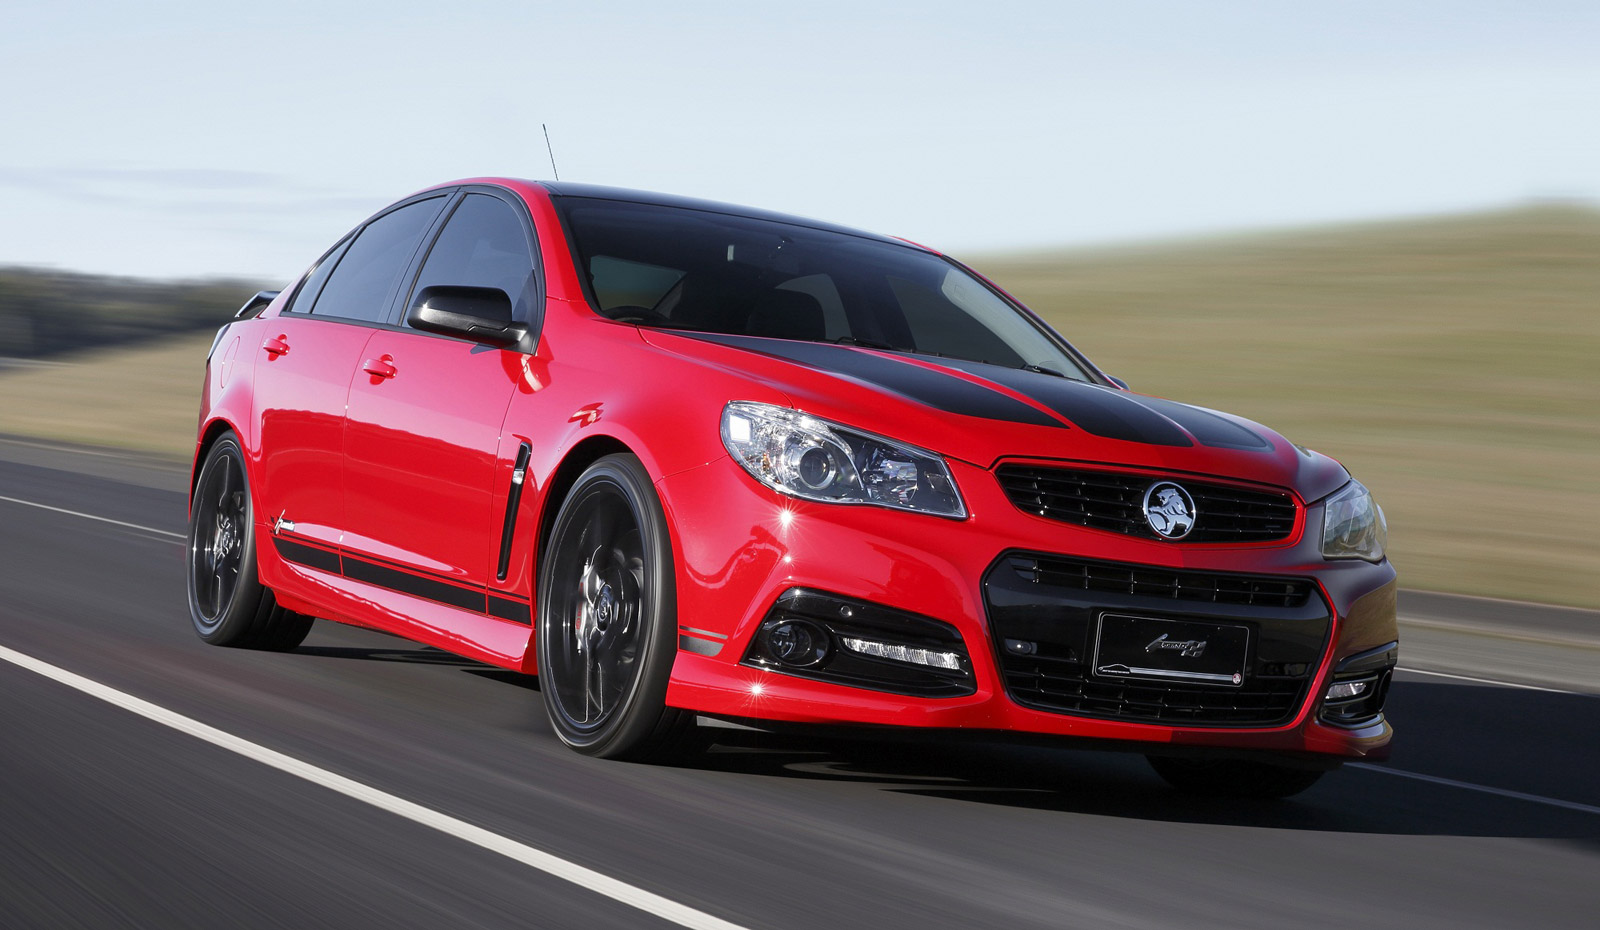 2015 Holden Commodore Ssv Gets Special Edition Inspired By Aussie